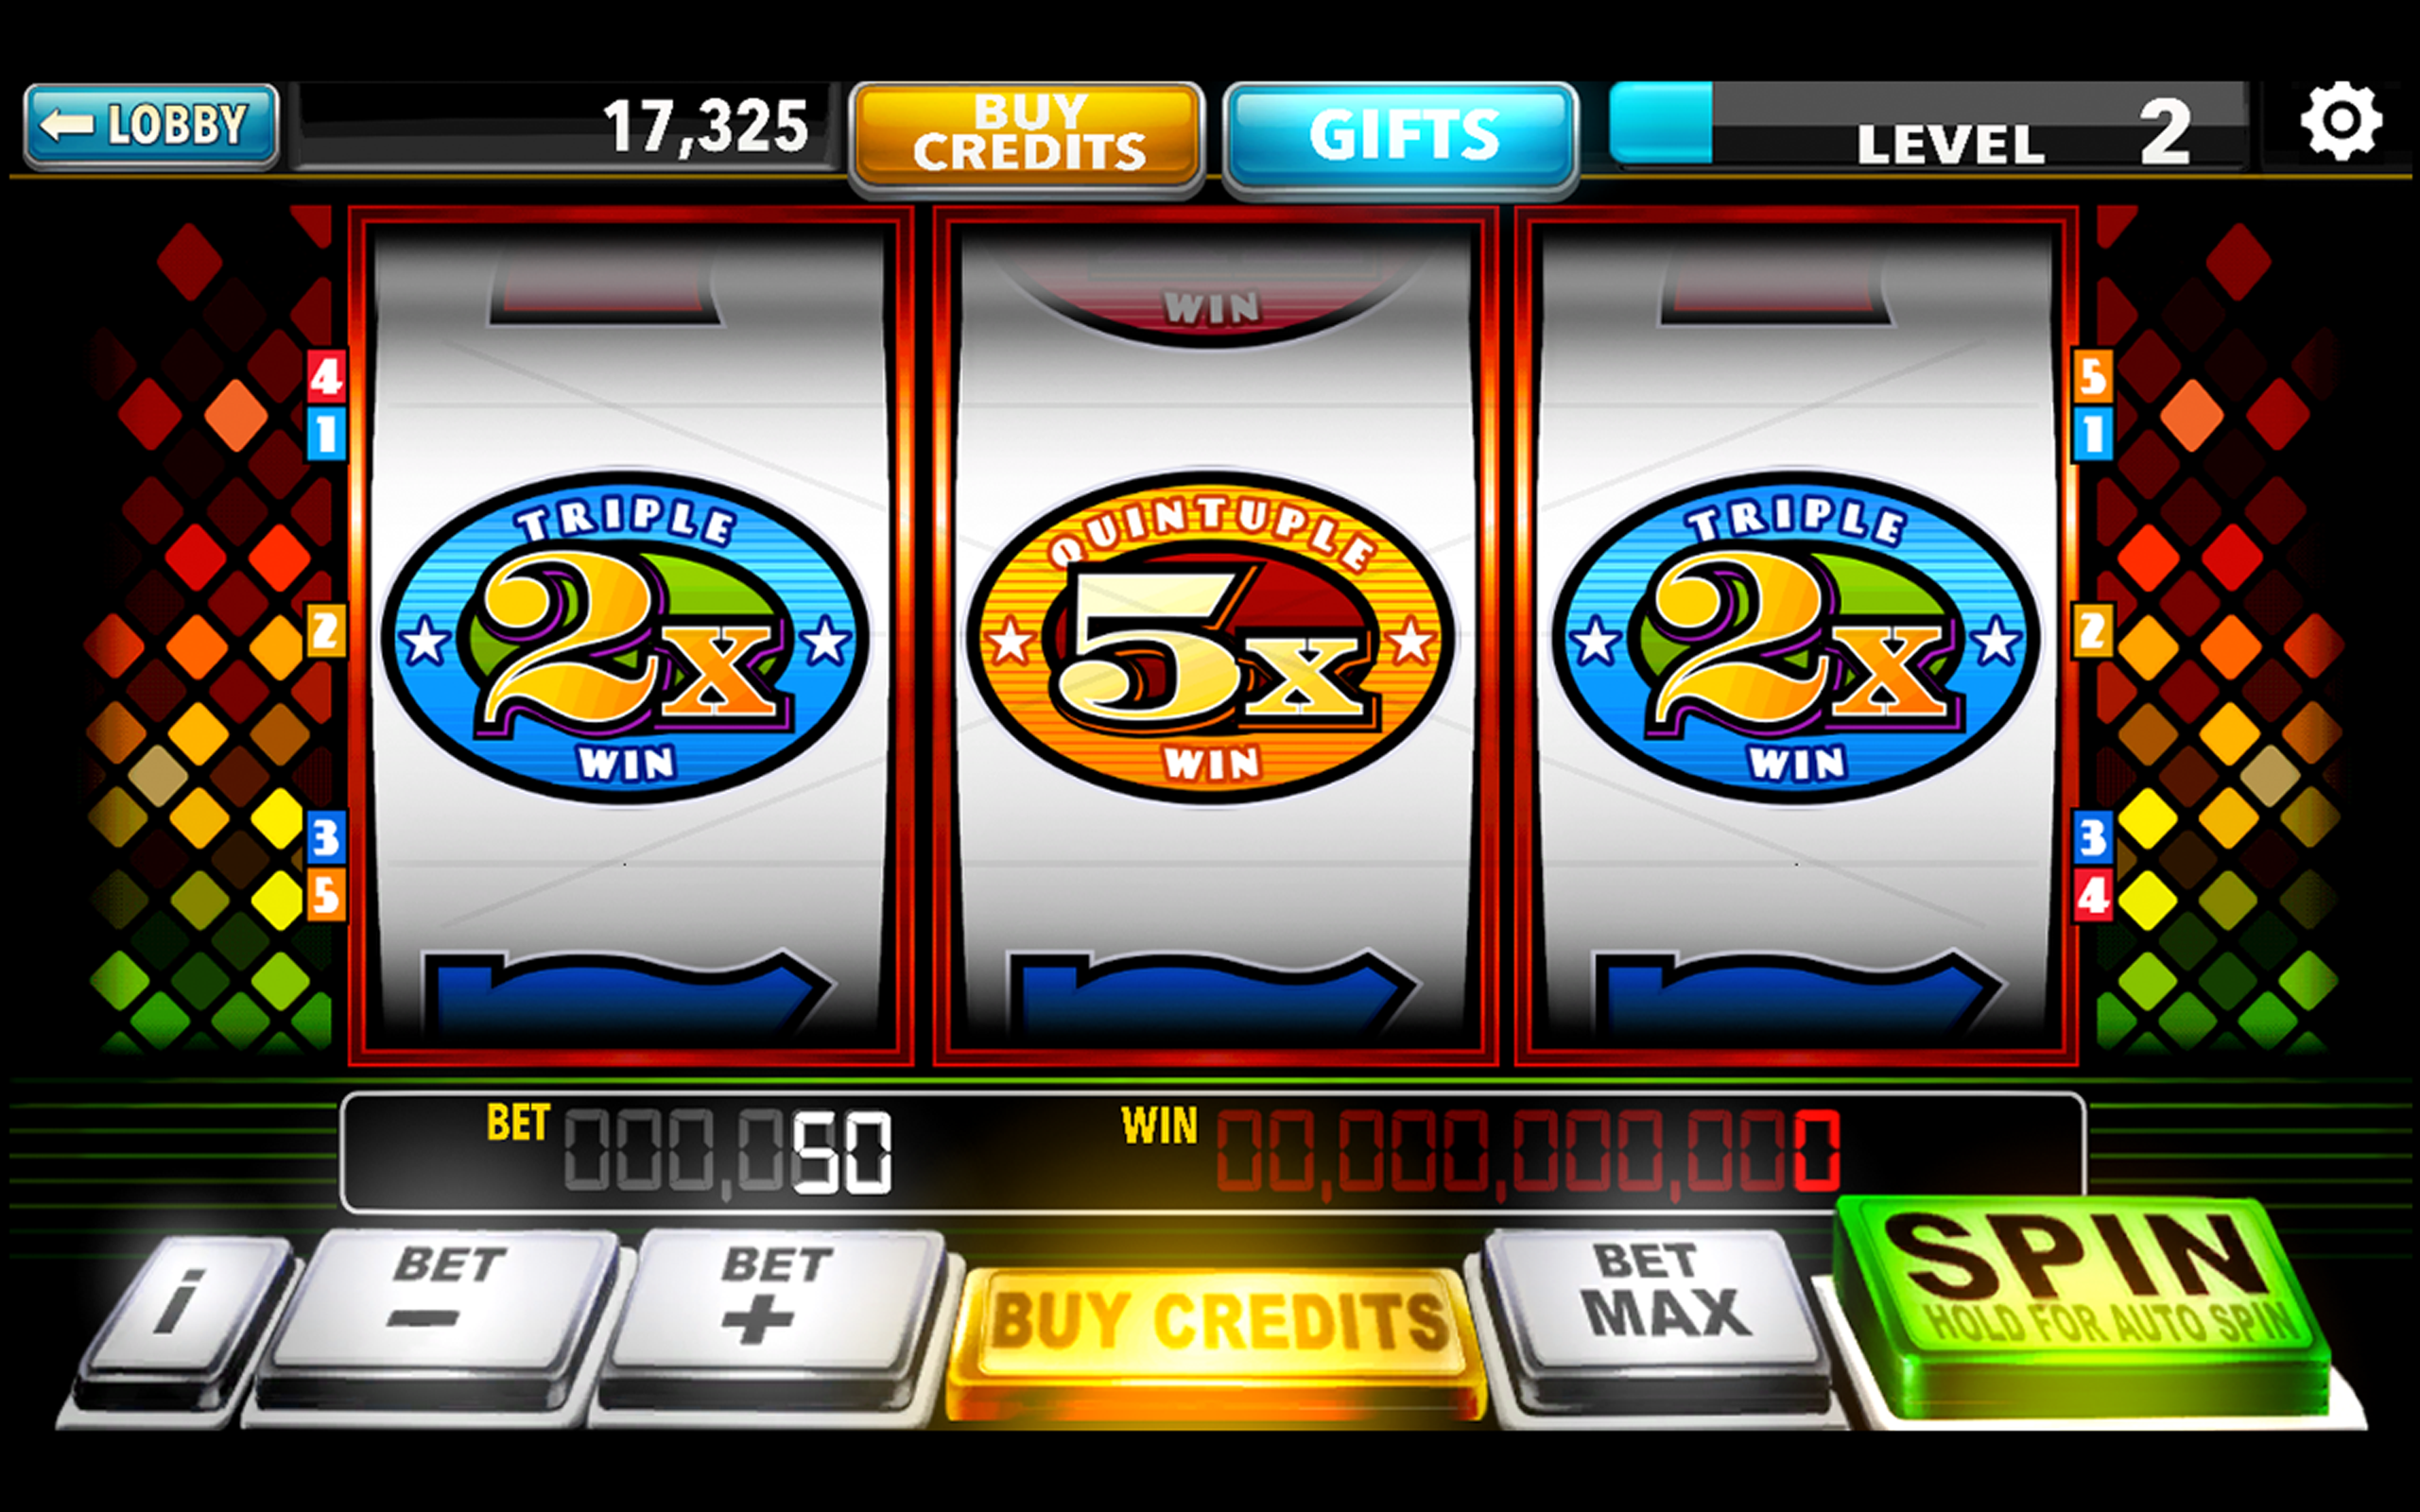 Online Slots Games For Free With Bonus Rounds